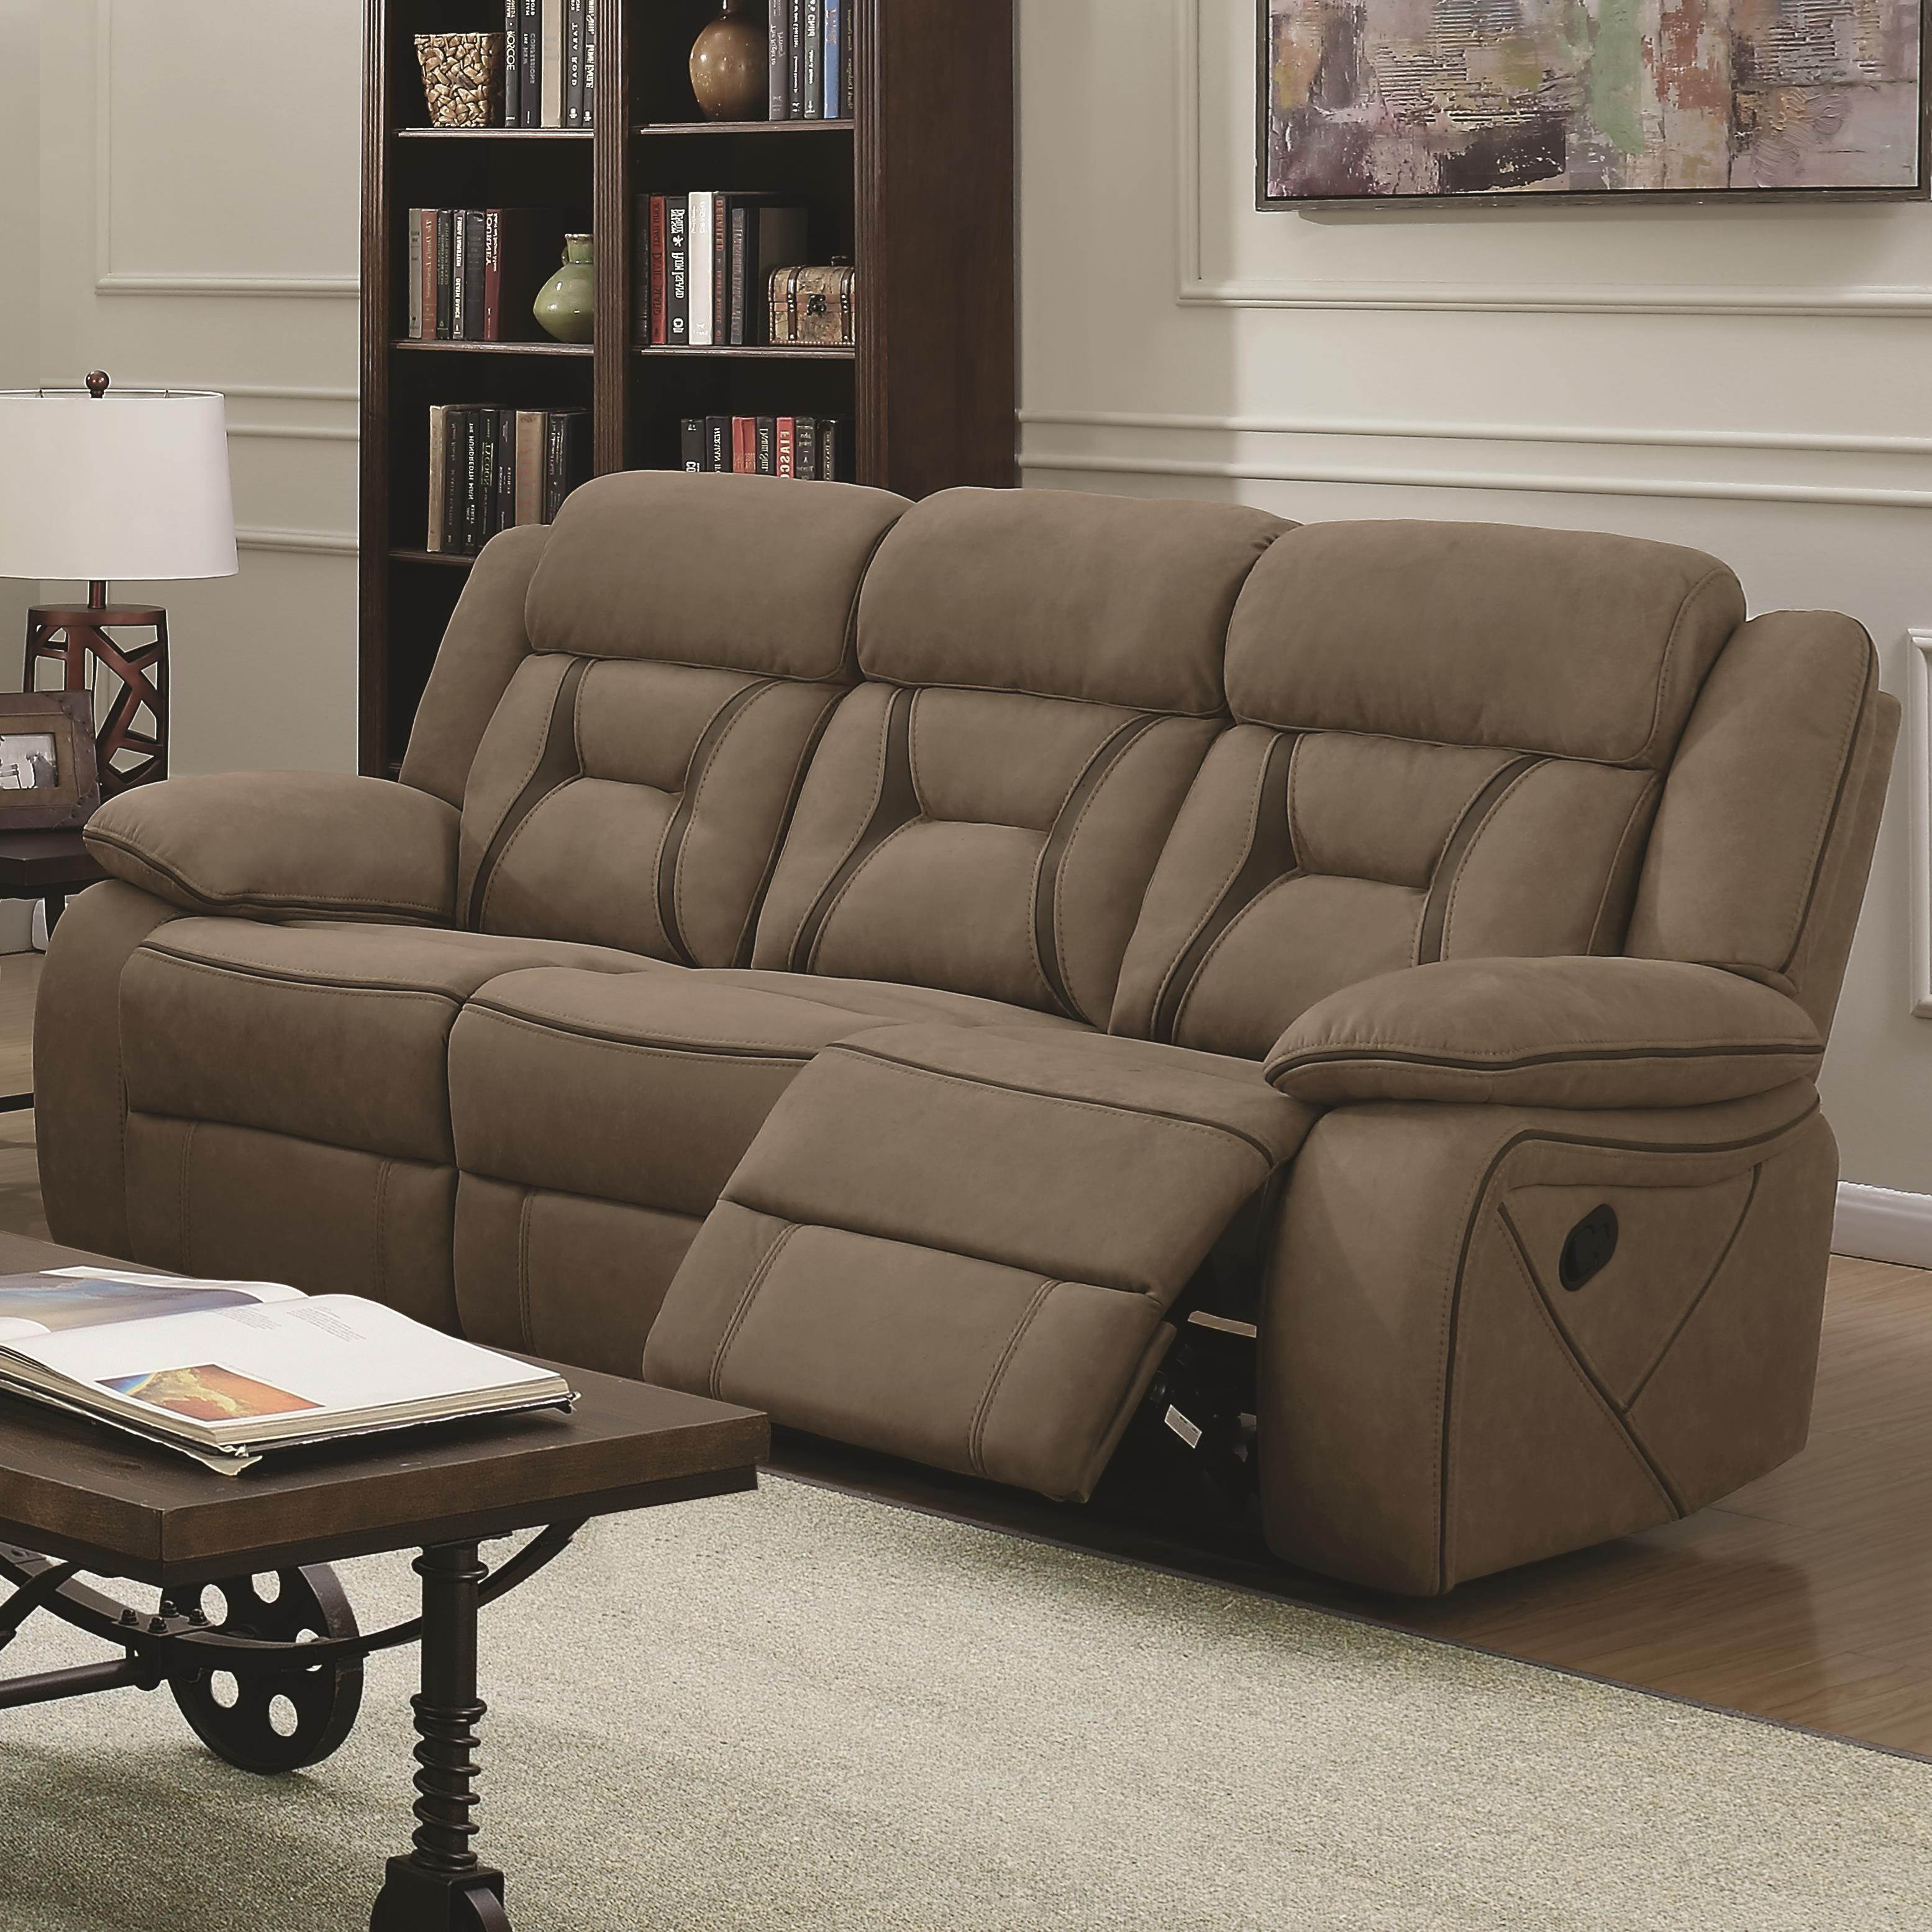 Coaster Houston Casual Pillow Padded Reclining Sofa With Contrast Stitching    Adcock Furniture   Reclining Sofas